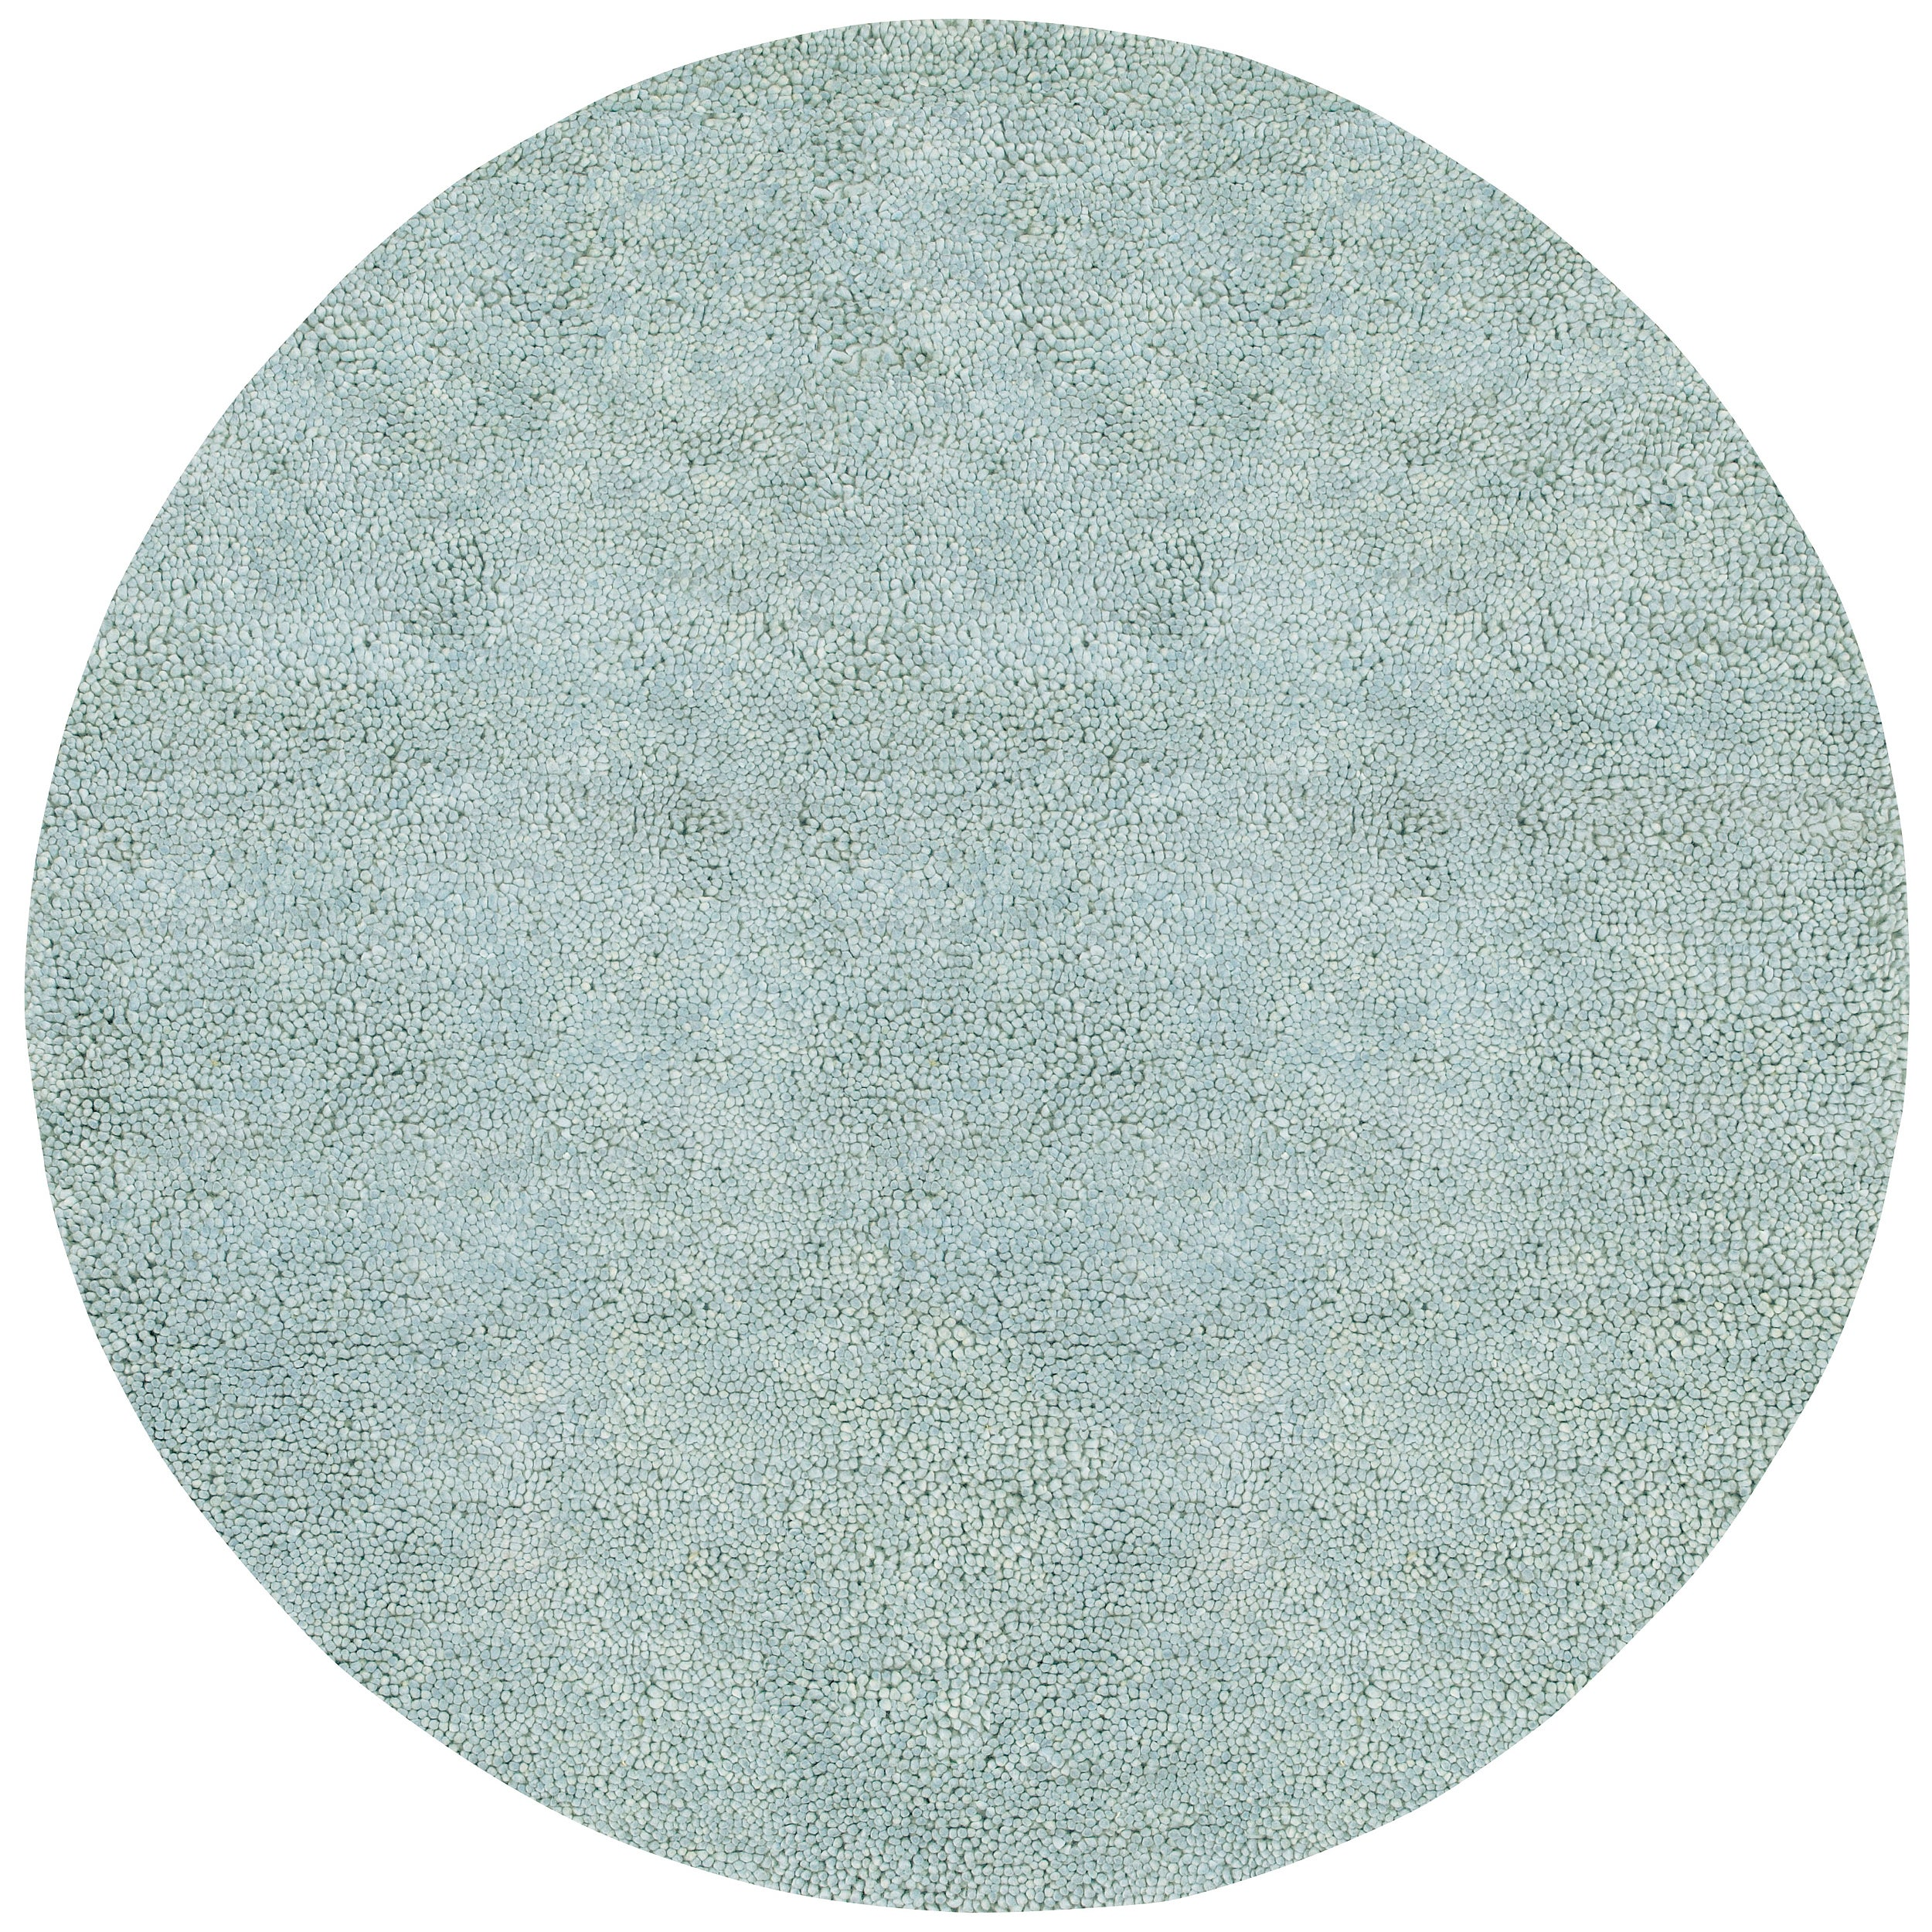 Hand-woven Nurnberg Colorful Plush Shag New Zealand Felted Wool Rug (8' Round)